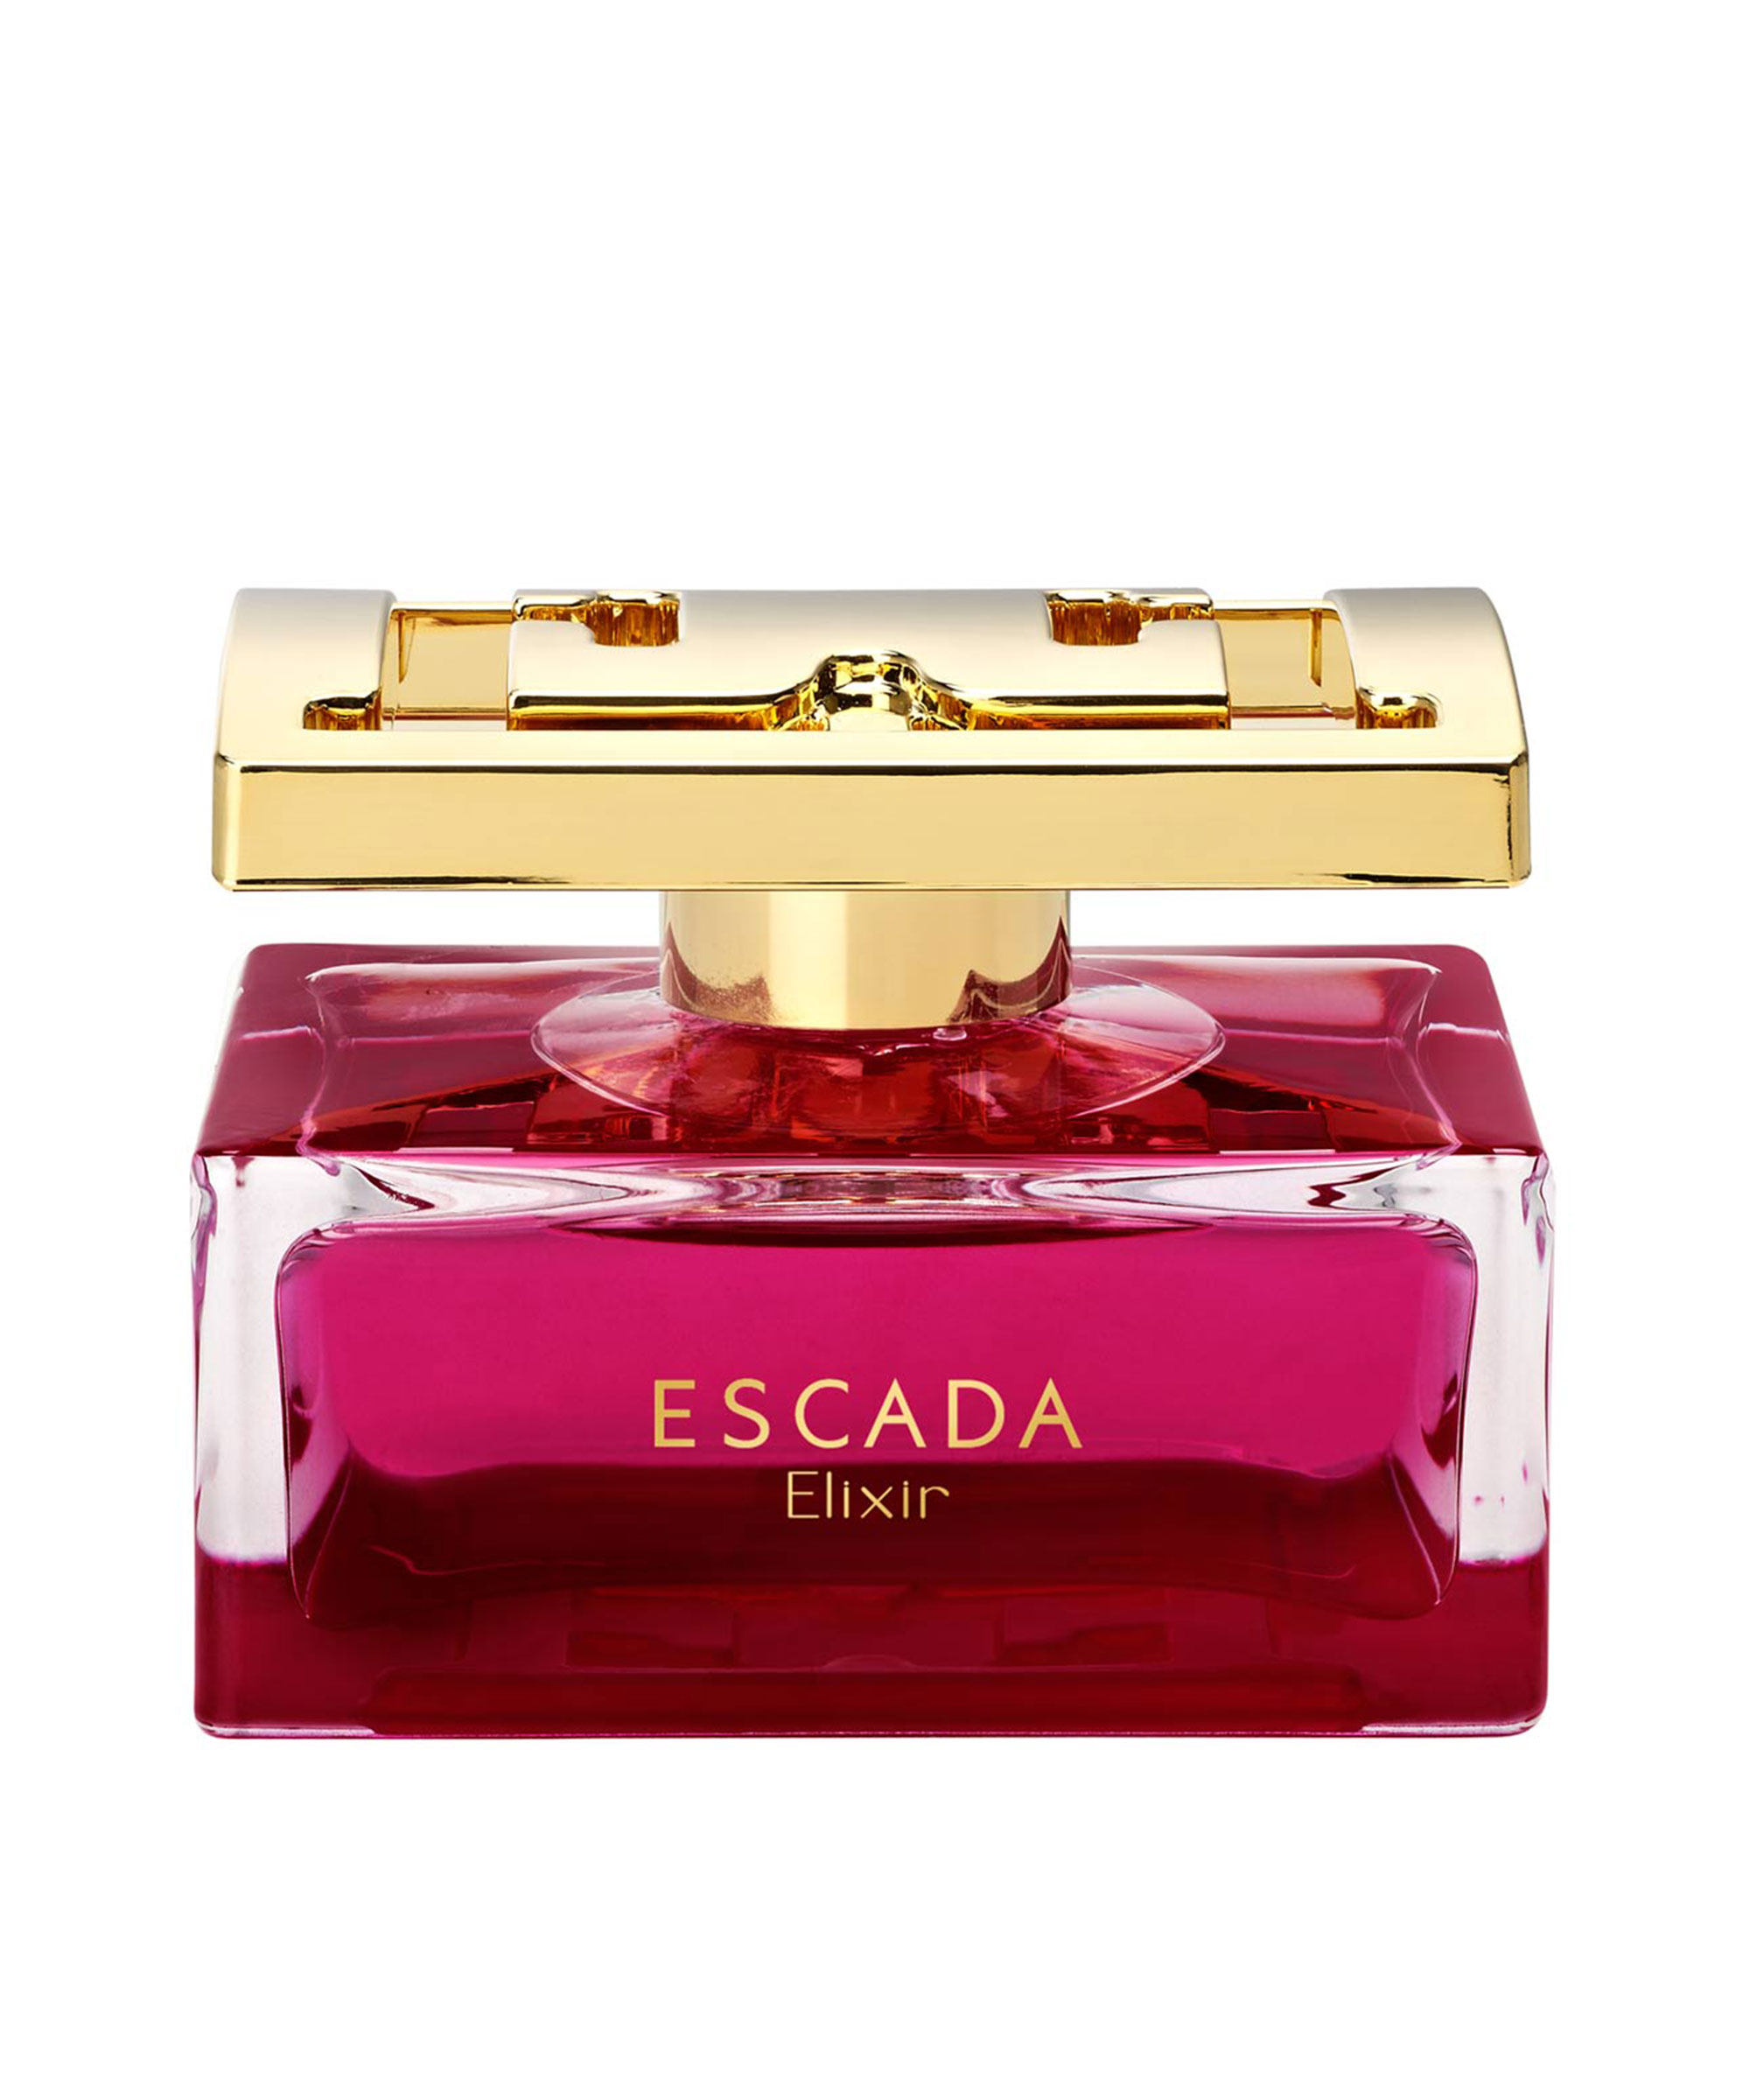 Escada Especially Elixir Eau De Parfum Beauty Line Shop Makeup